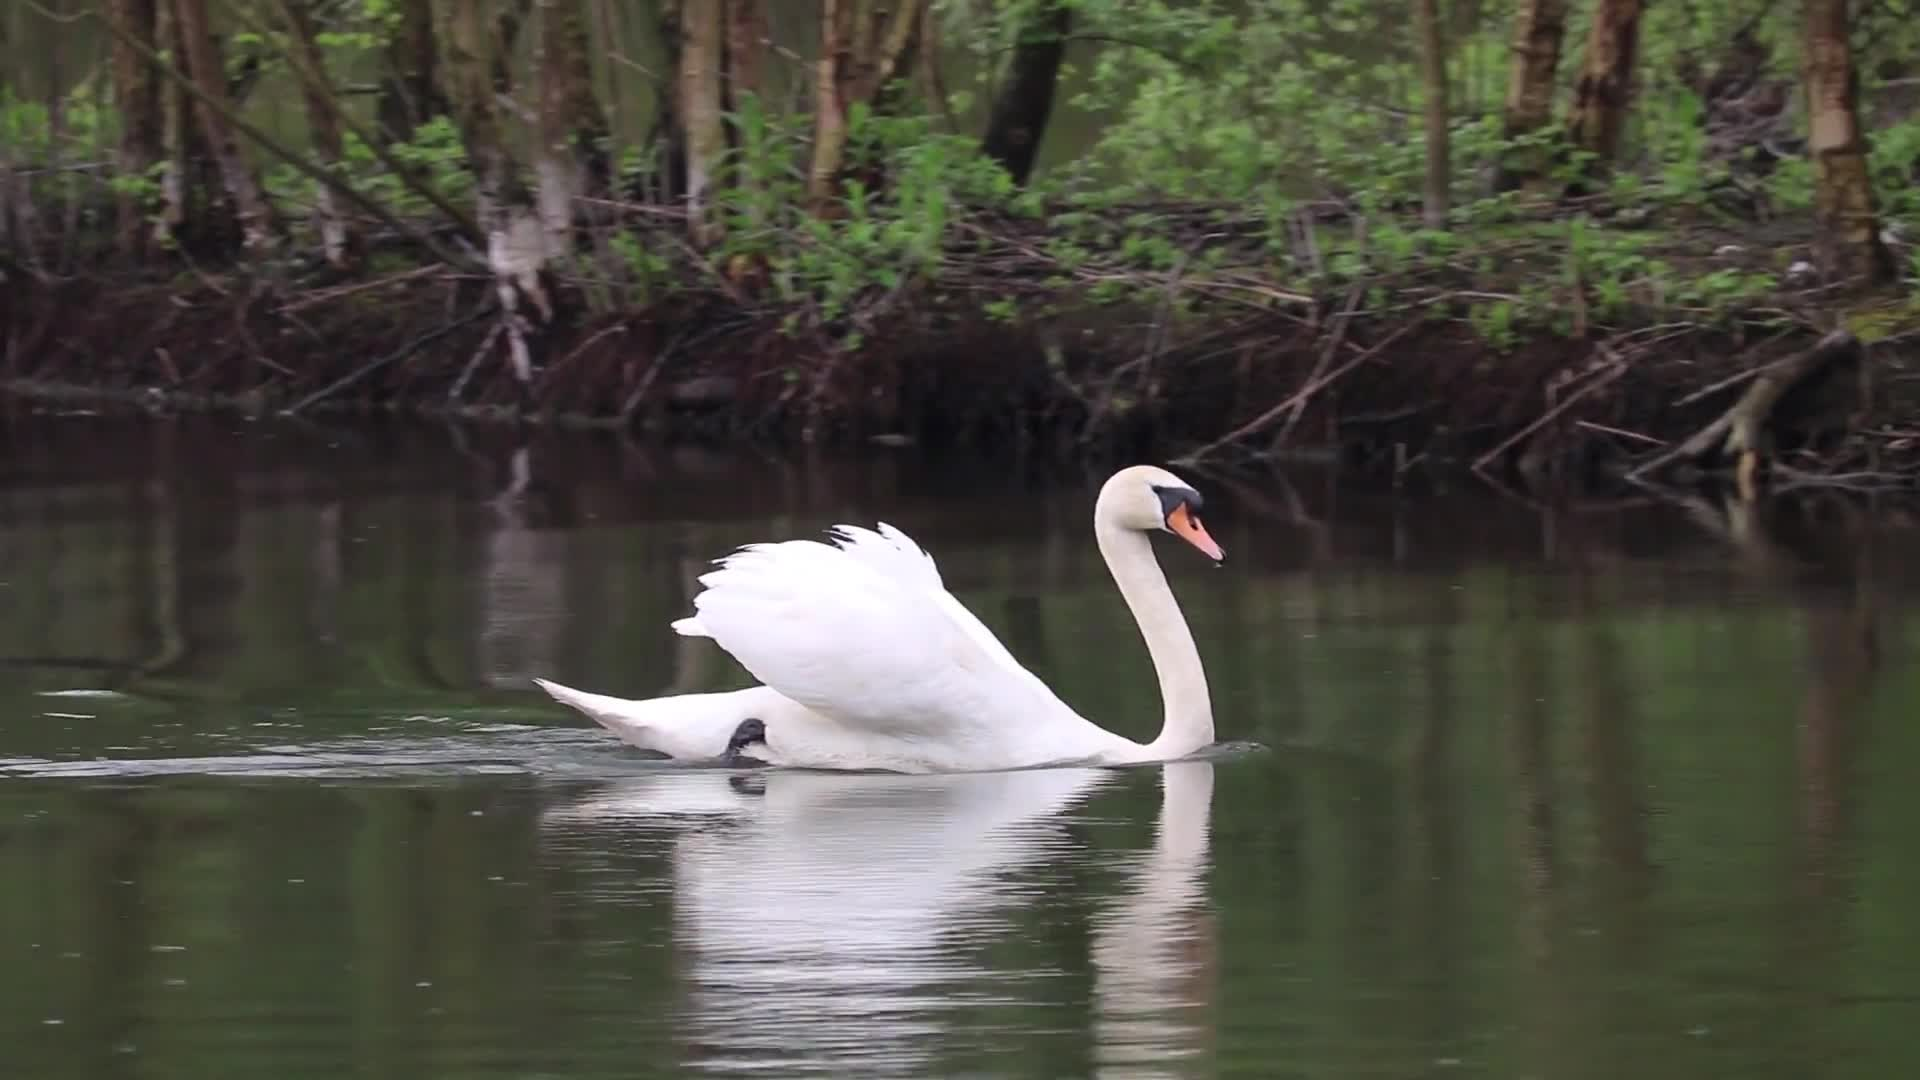 Swans swimming water bird fowl